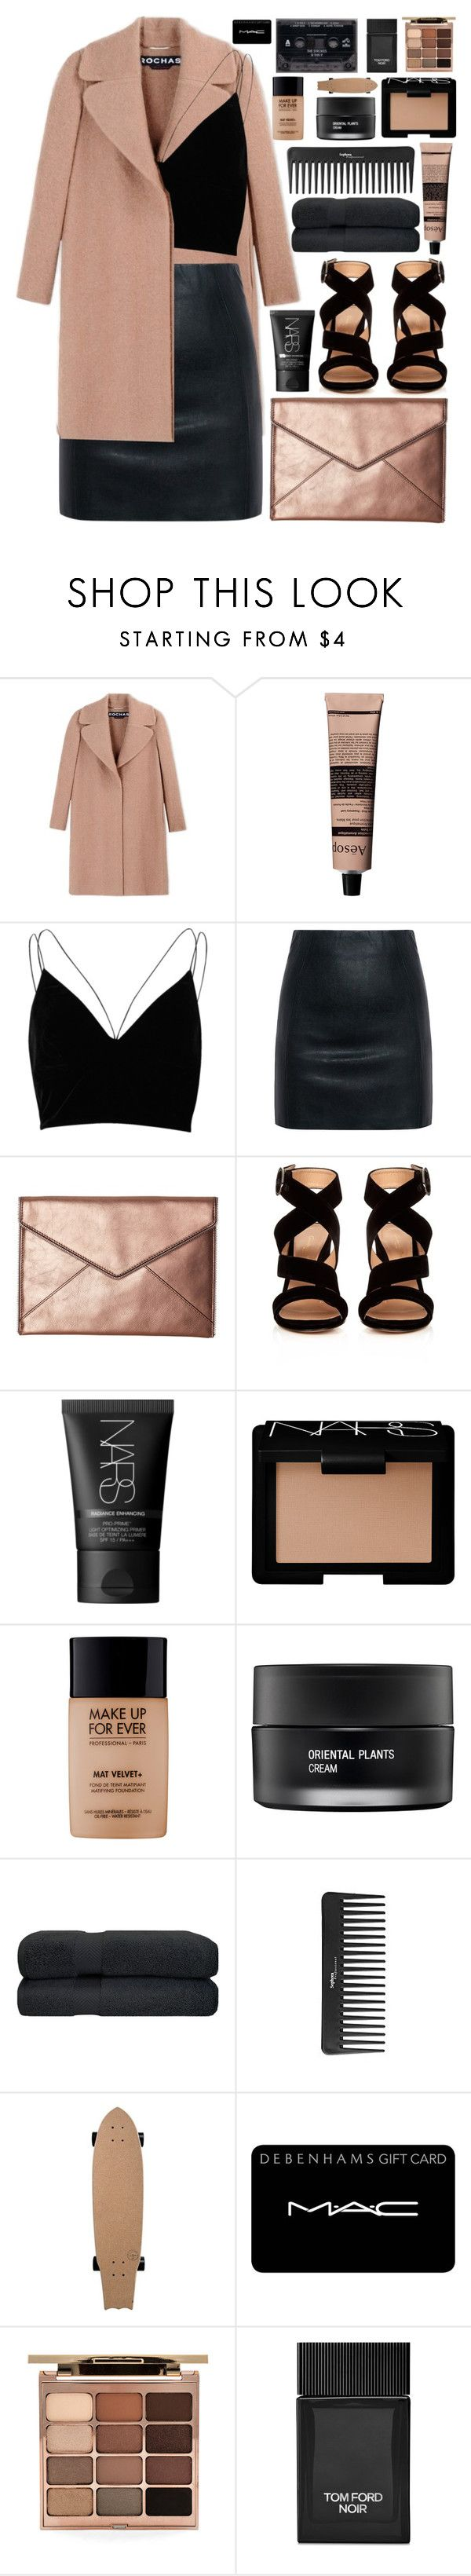 """take me home (top set)"" by charli-oakeby ❤ liked on Polyvore featuring Rochas, Aesop, River Island, McQ by Alexander McQueen, Rebecca Minkoff, Gianvito Rossi, NARS Cosmetics, MAKE UP FOR EVER, Koh Gen Do and Sephora Collection"